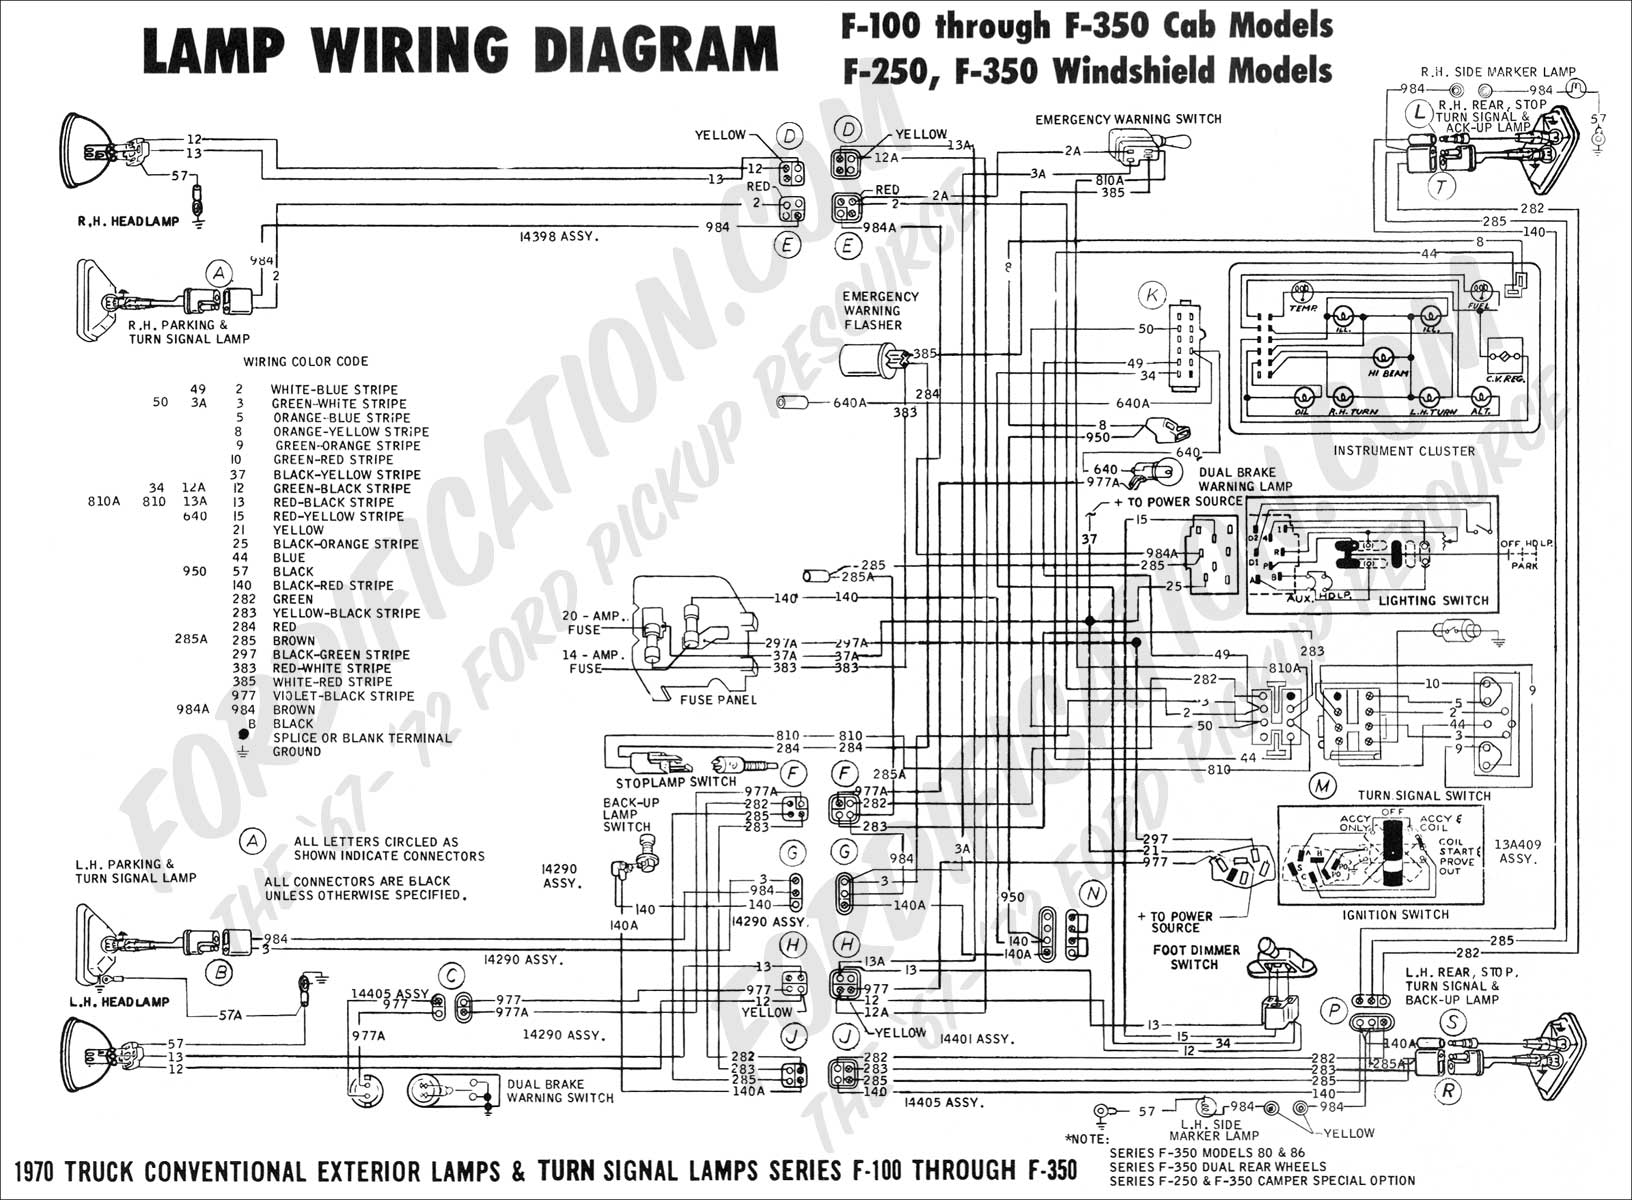 f250 ford wiring diagram wiring diagram for you all u2022 rh onlinetuner co wiring diagram ford focus 2001 wiring diagram ford e350 van